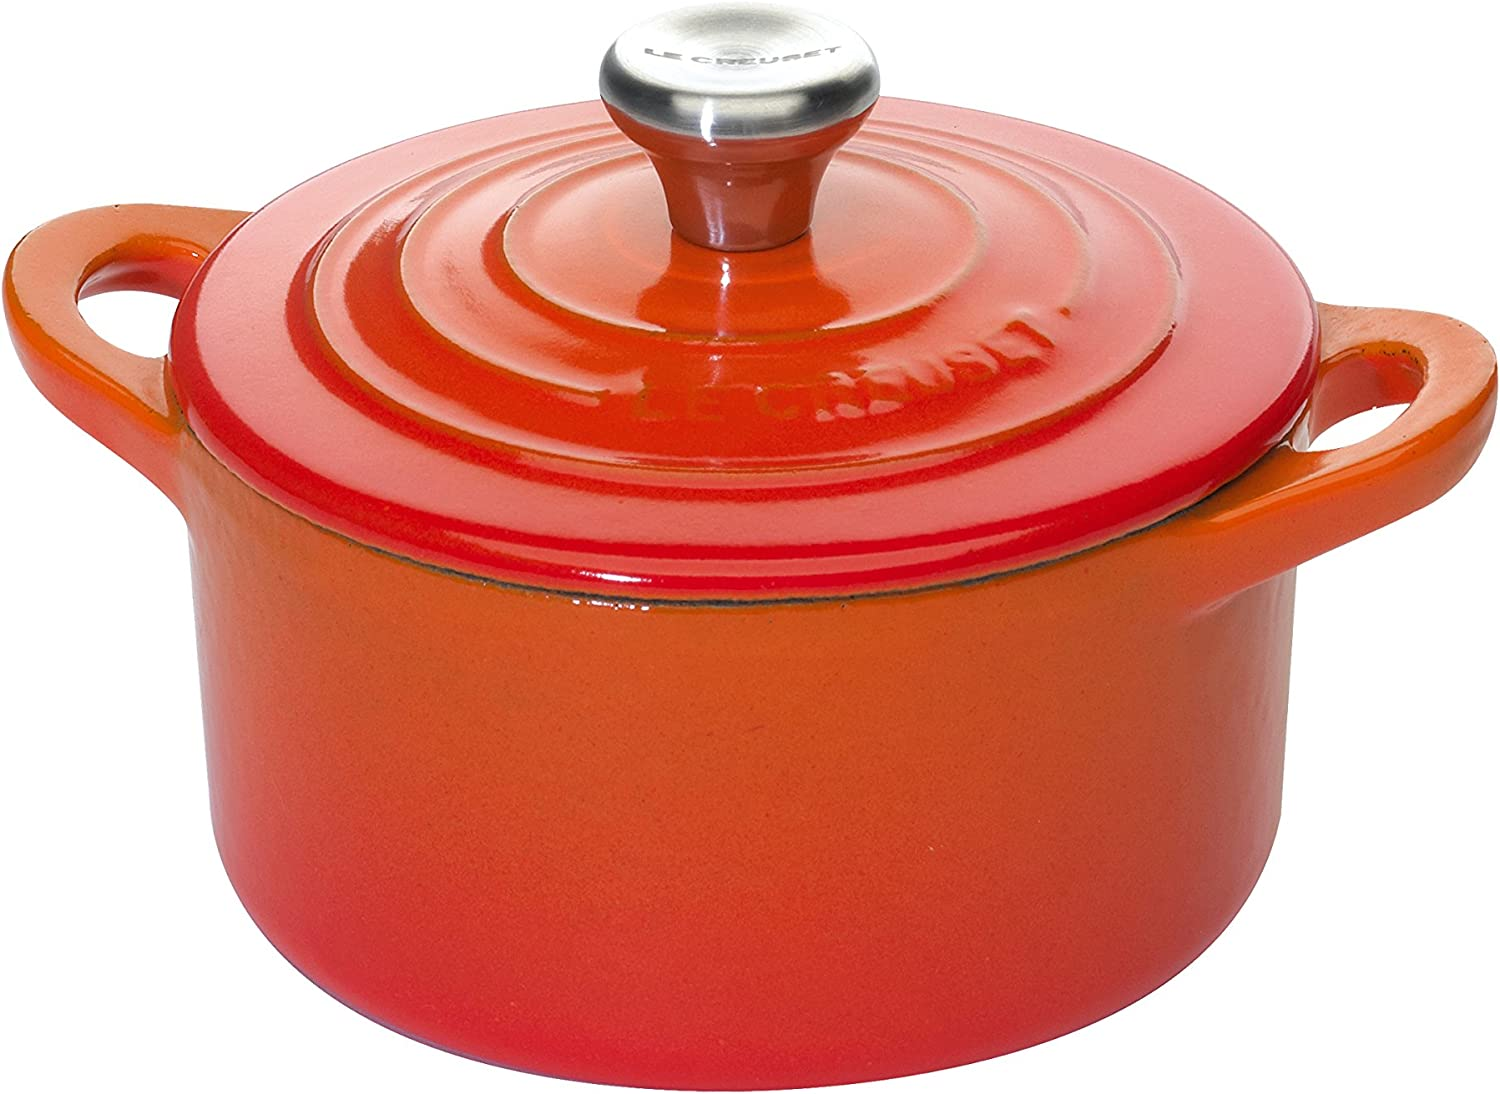 Le Creuset L2501-10S2 Enameled Cast-Iron Mini Cocotte, 1/3-Quart, Flame